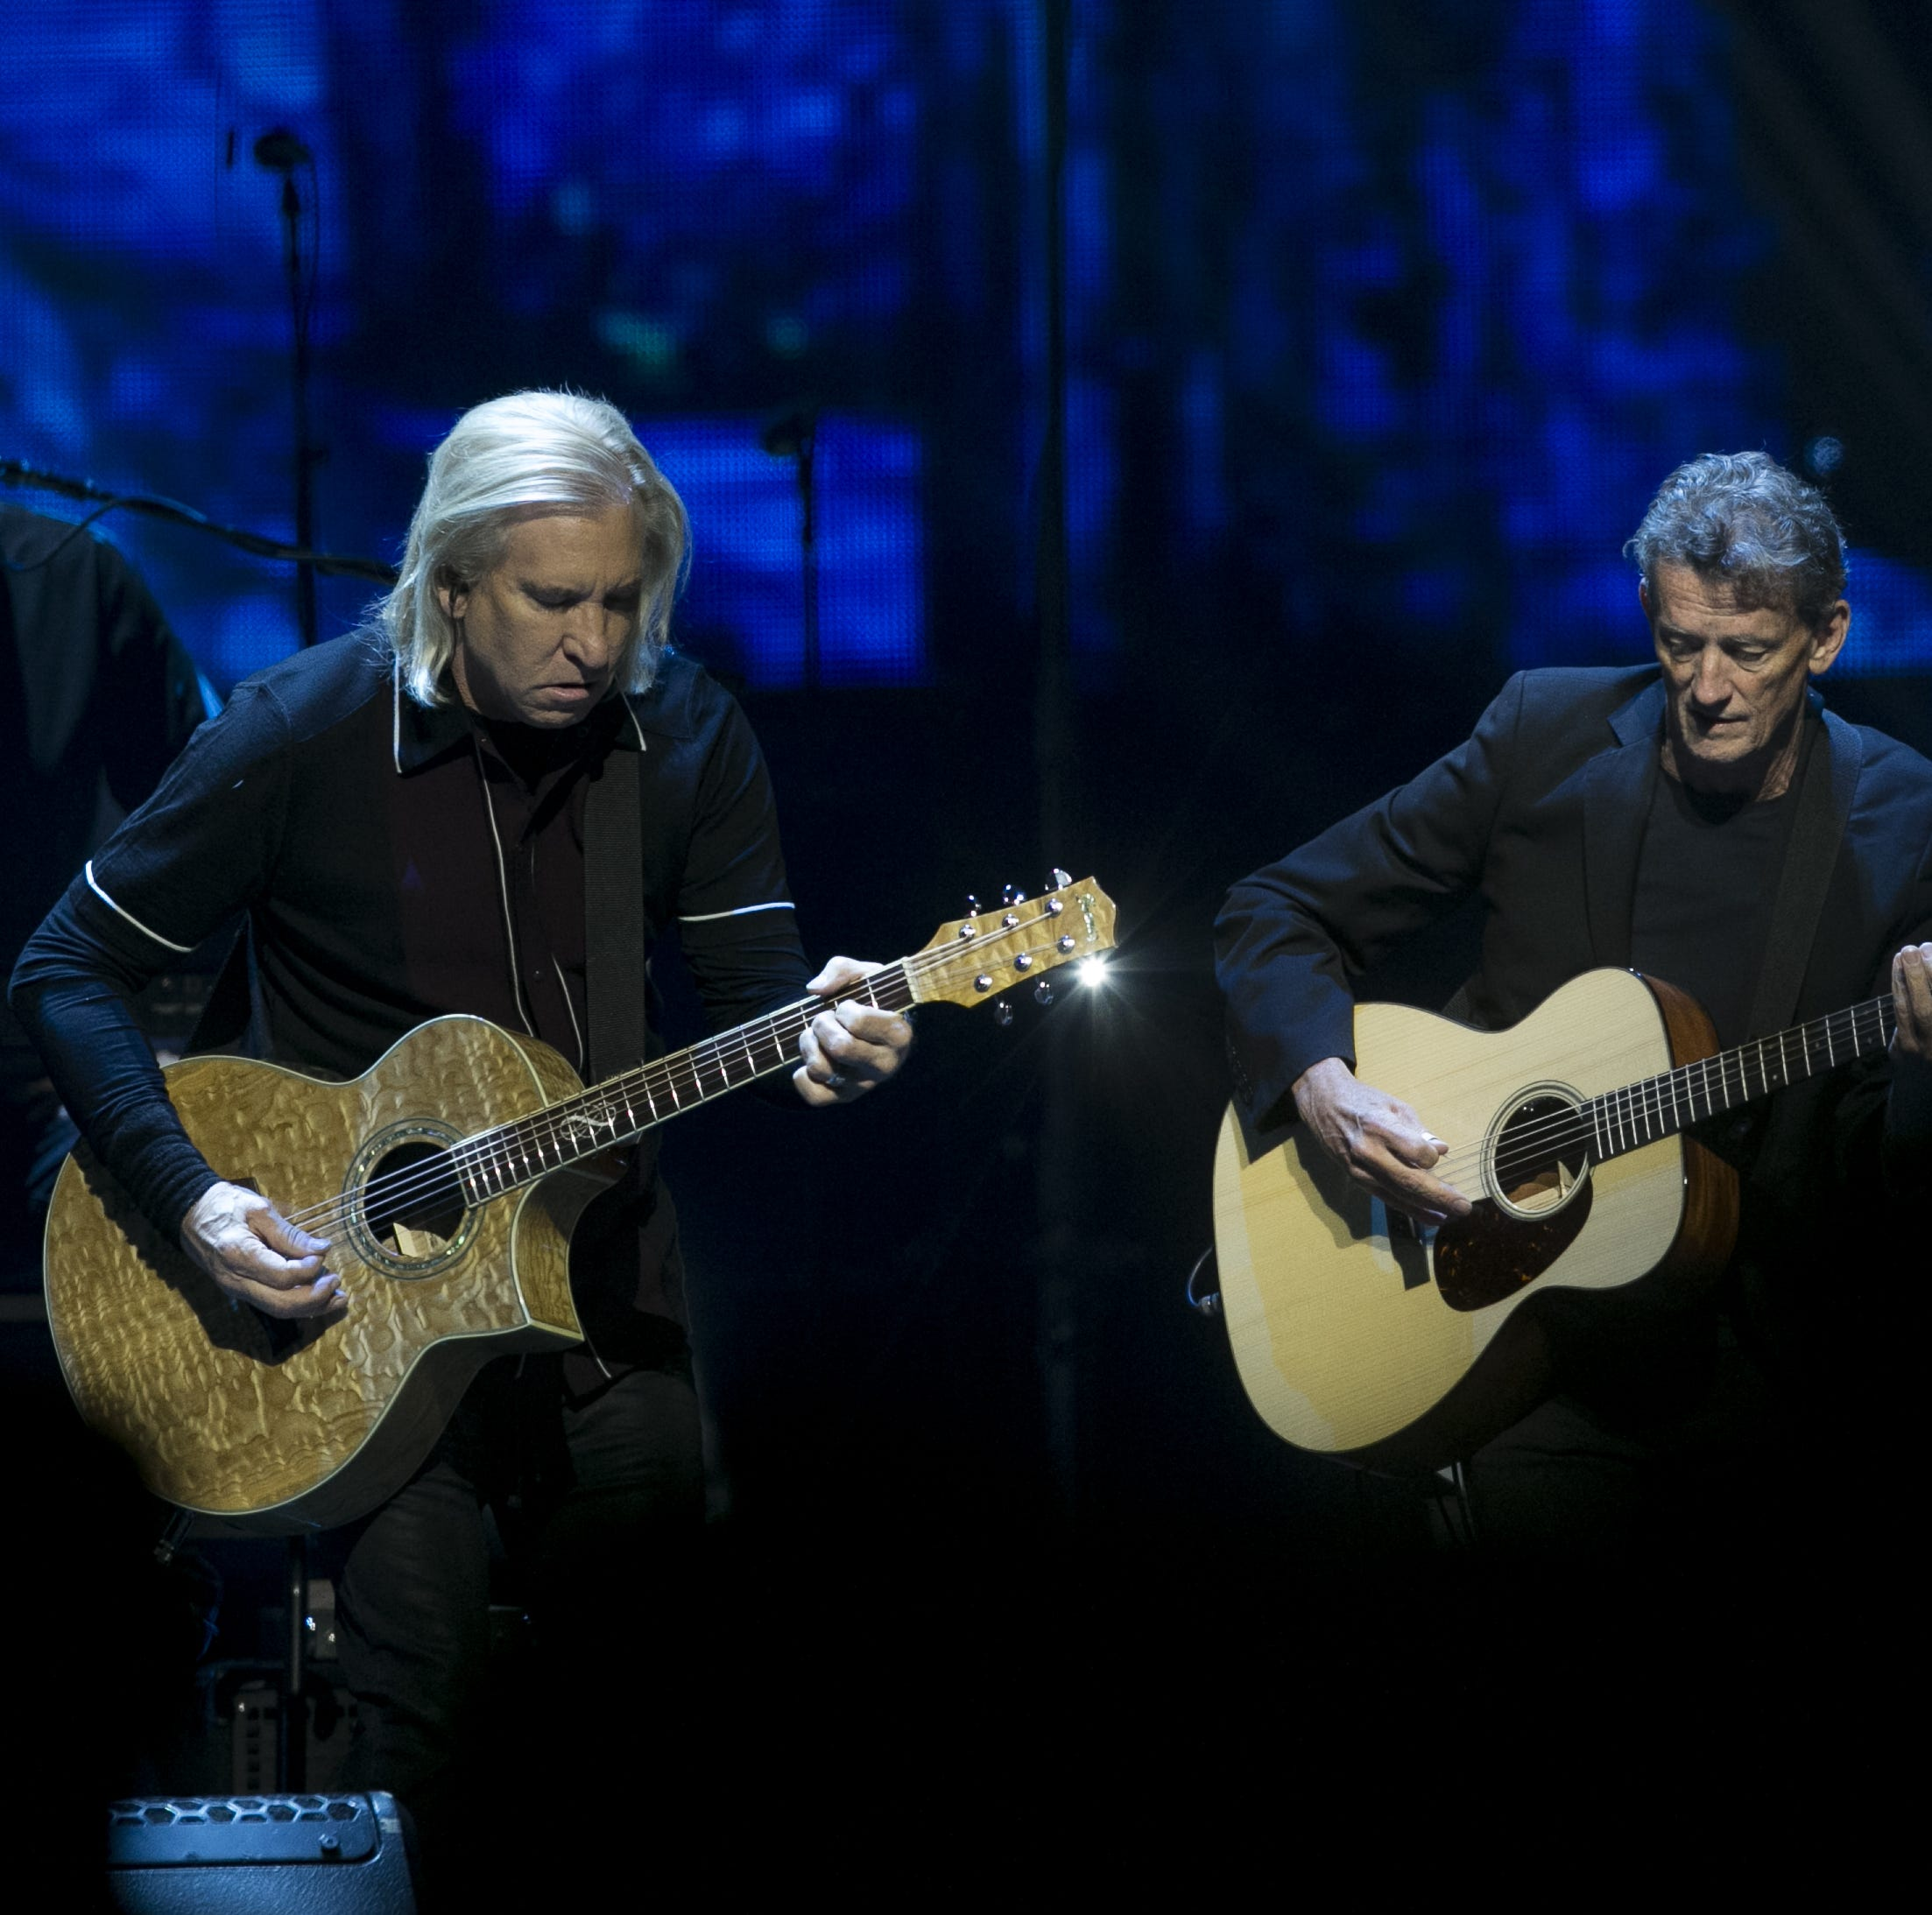 The Eagles honor Glenn Frey's memory in a hit-filled set while welcoming new members